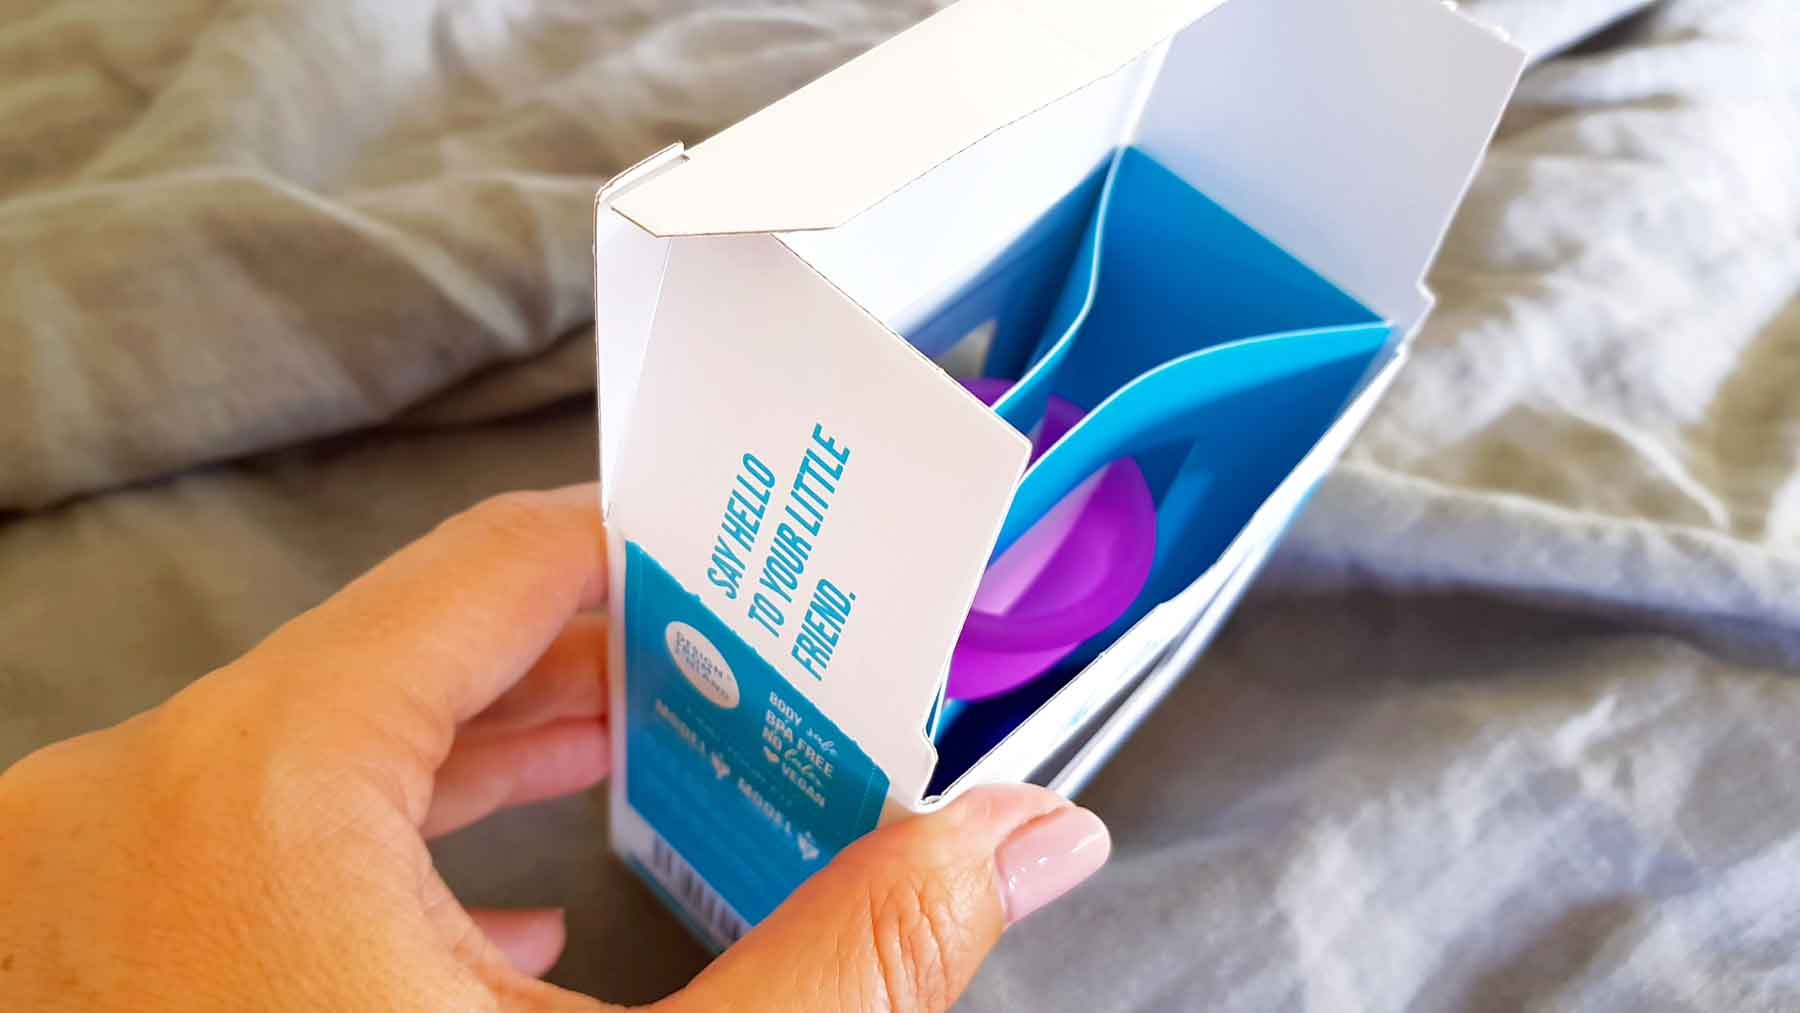 New Zealand's Top Mummy Blogger Parenting Travel Blog Family Lunette Menstrual Cup Review